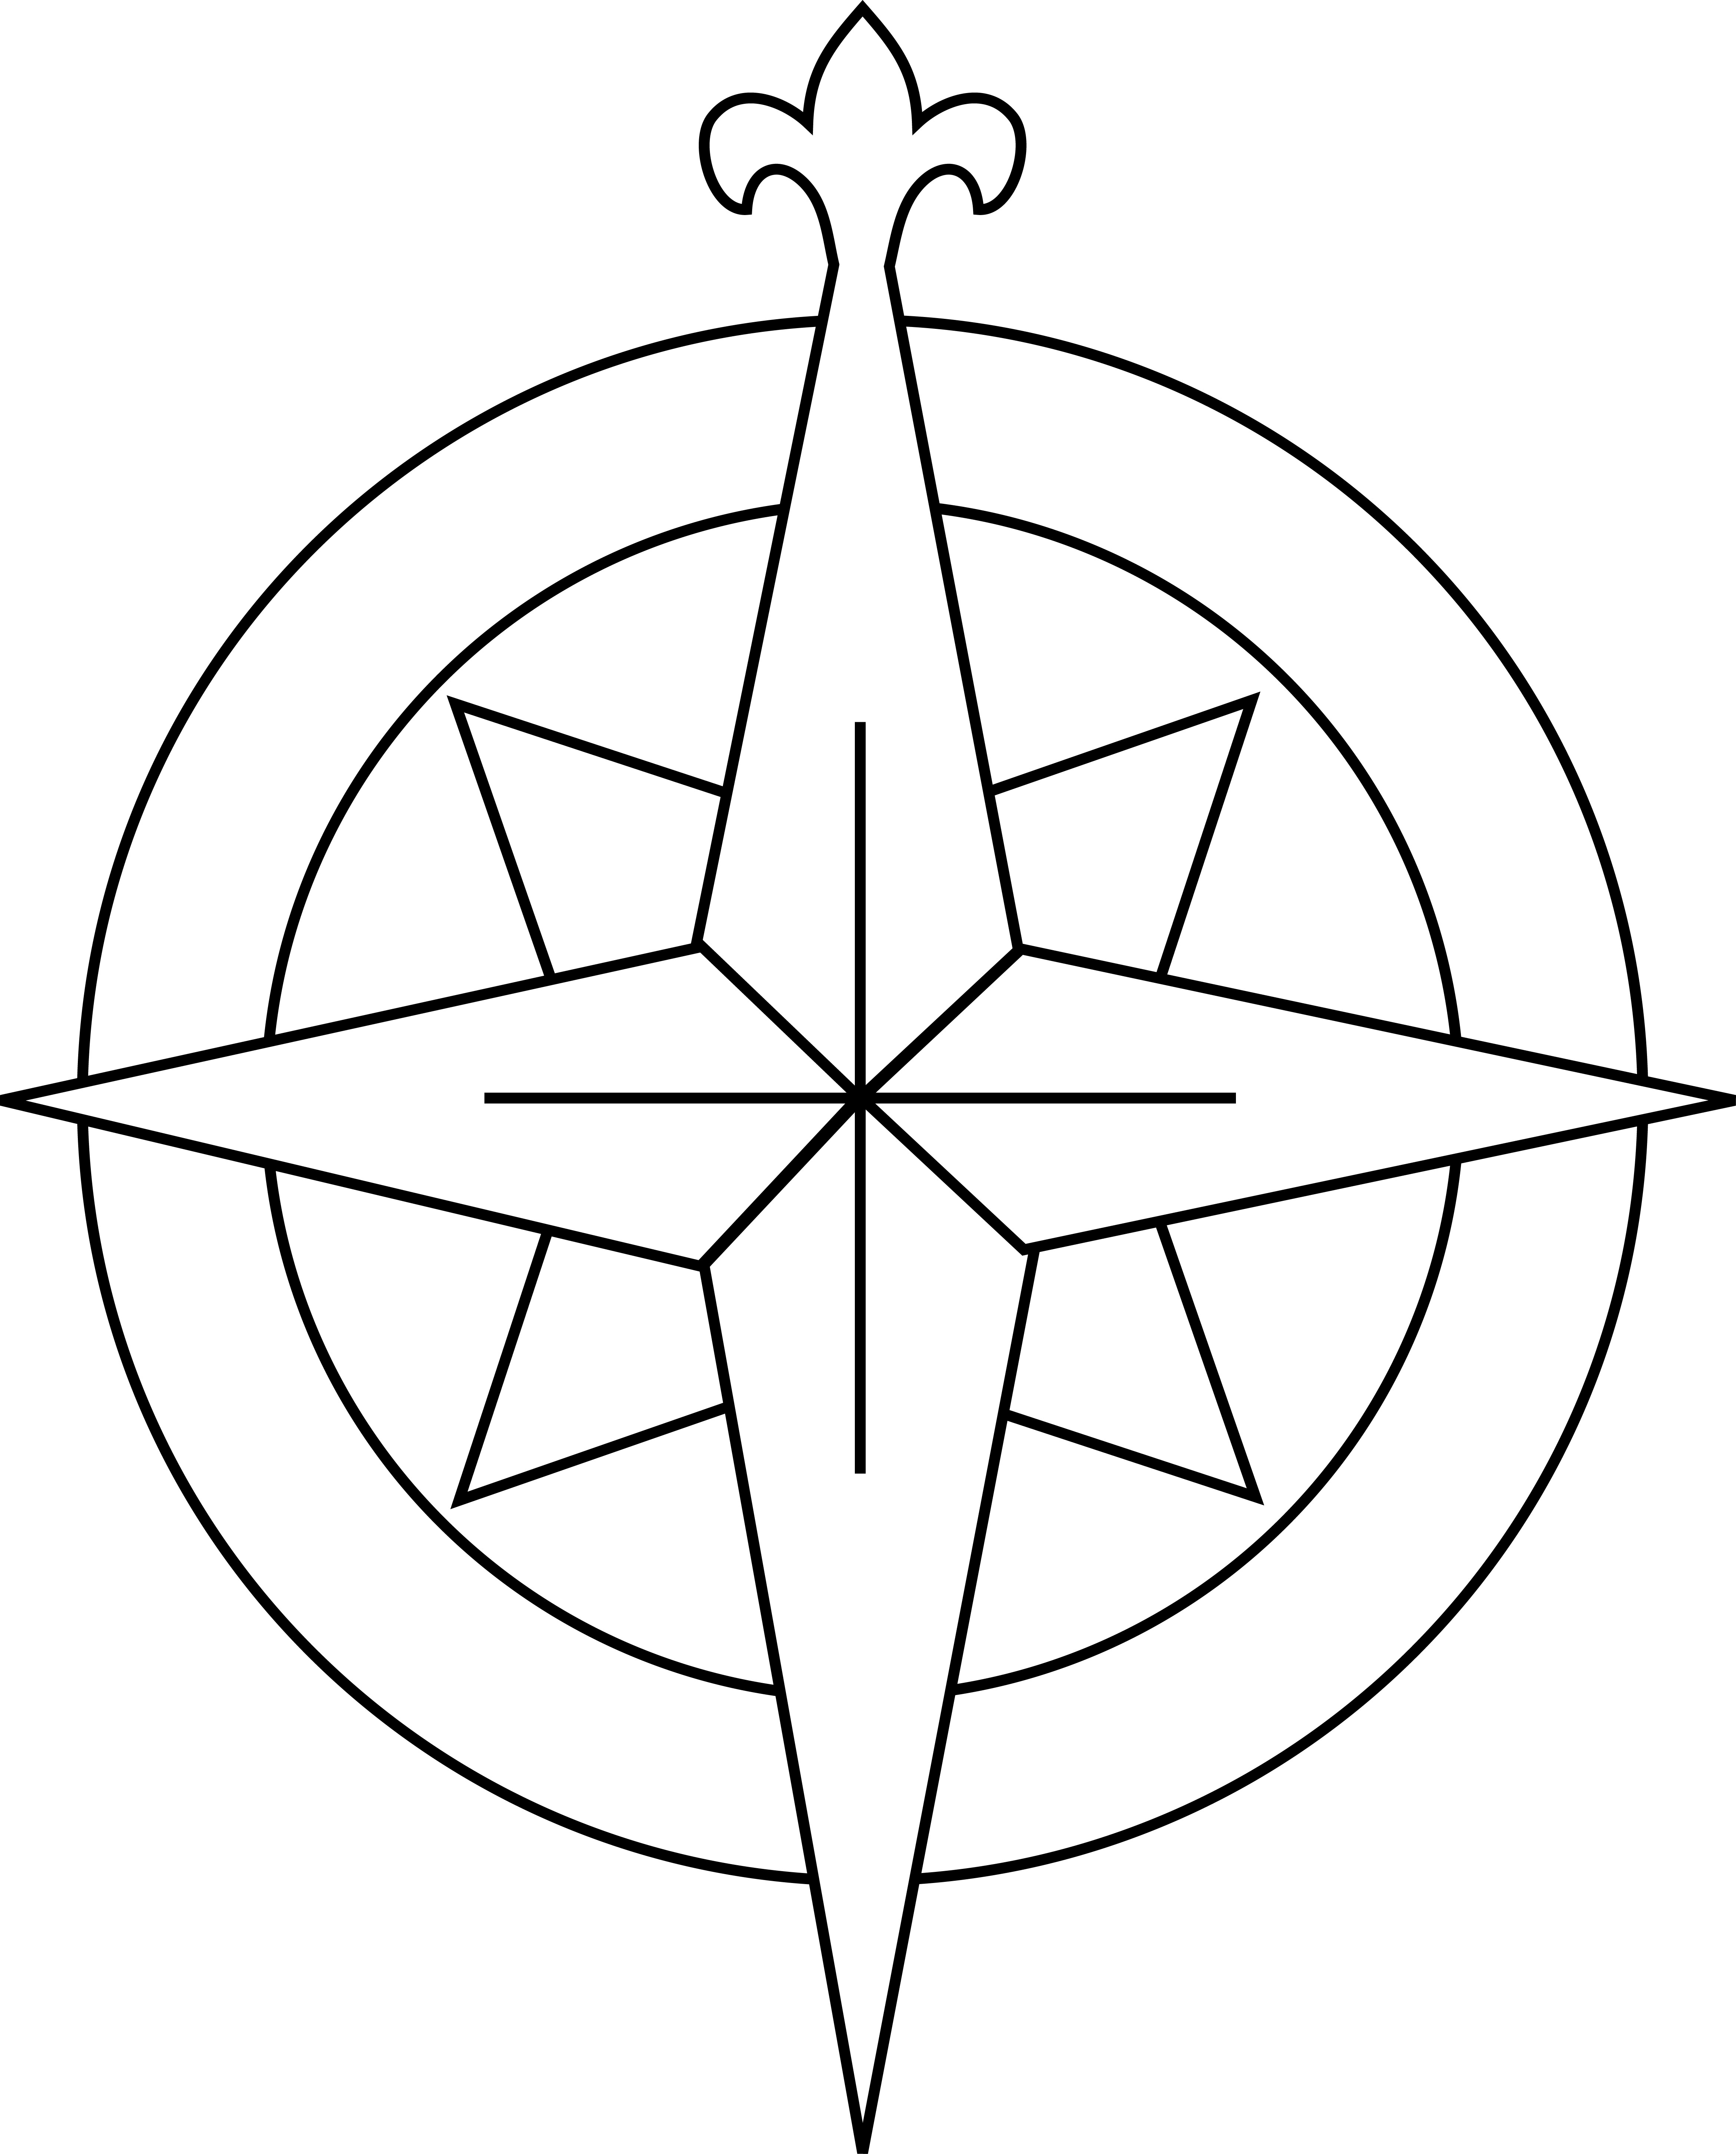 Drawn compass line drawing Images Clip Art : Heraldic